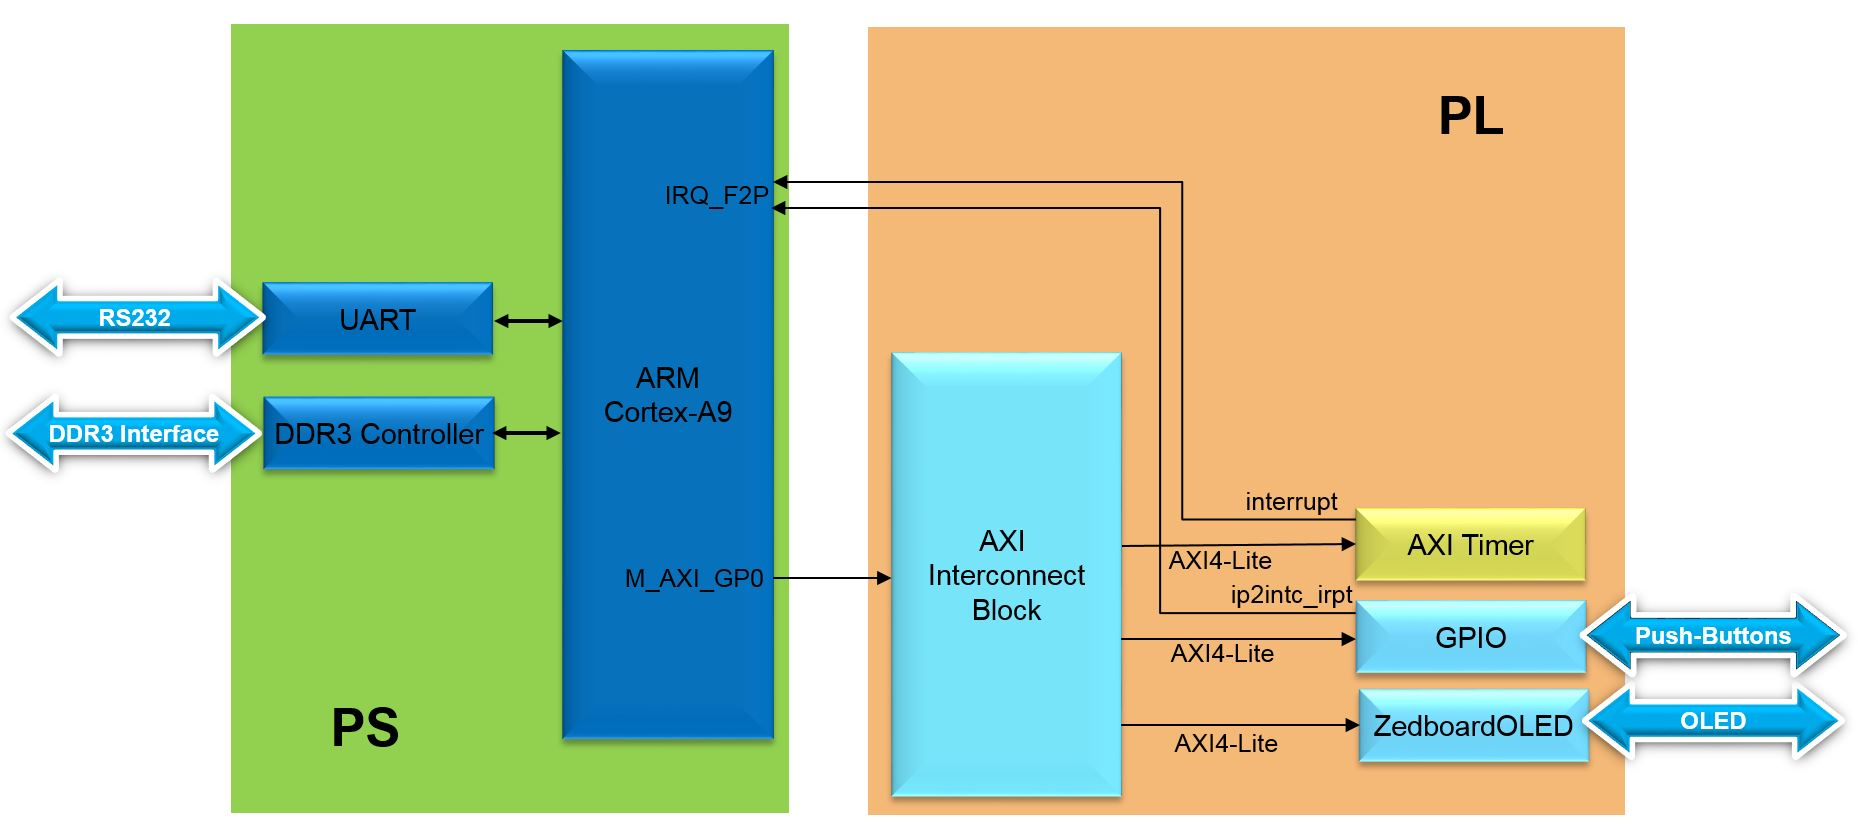 Hardware timers embedded centric lab5 block diagram ccuart Images